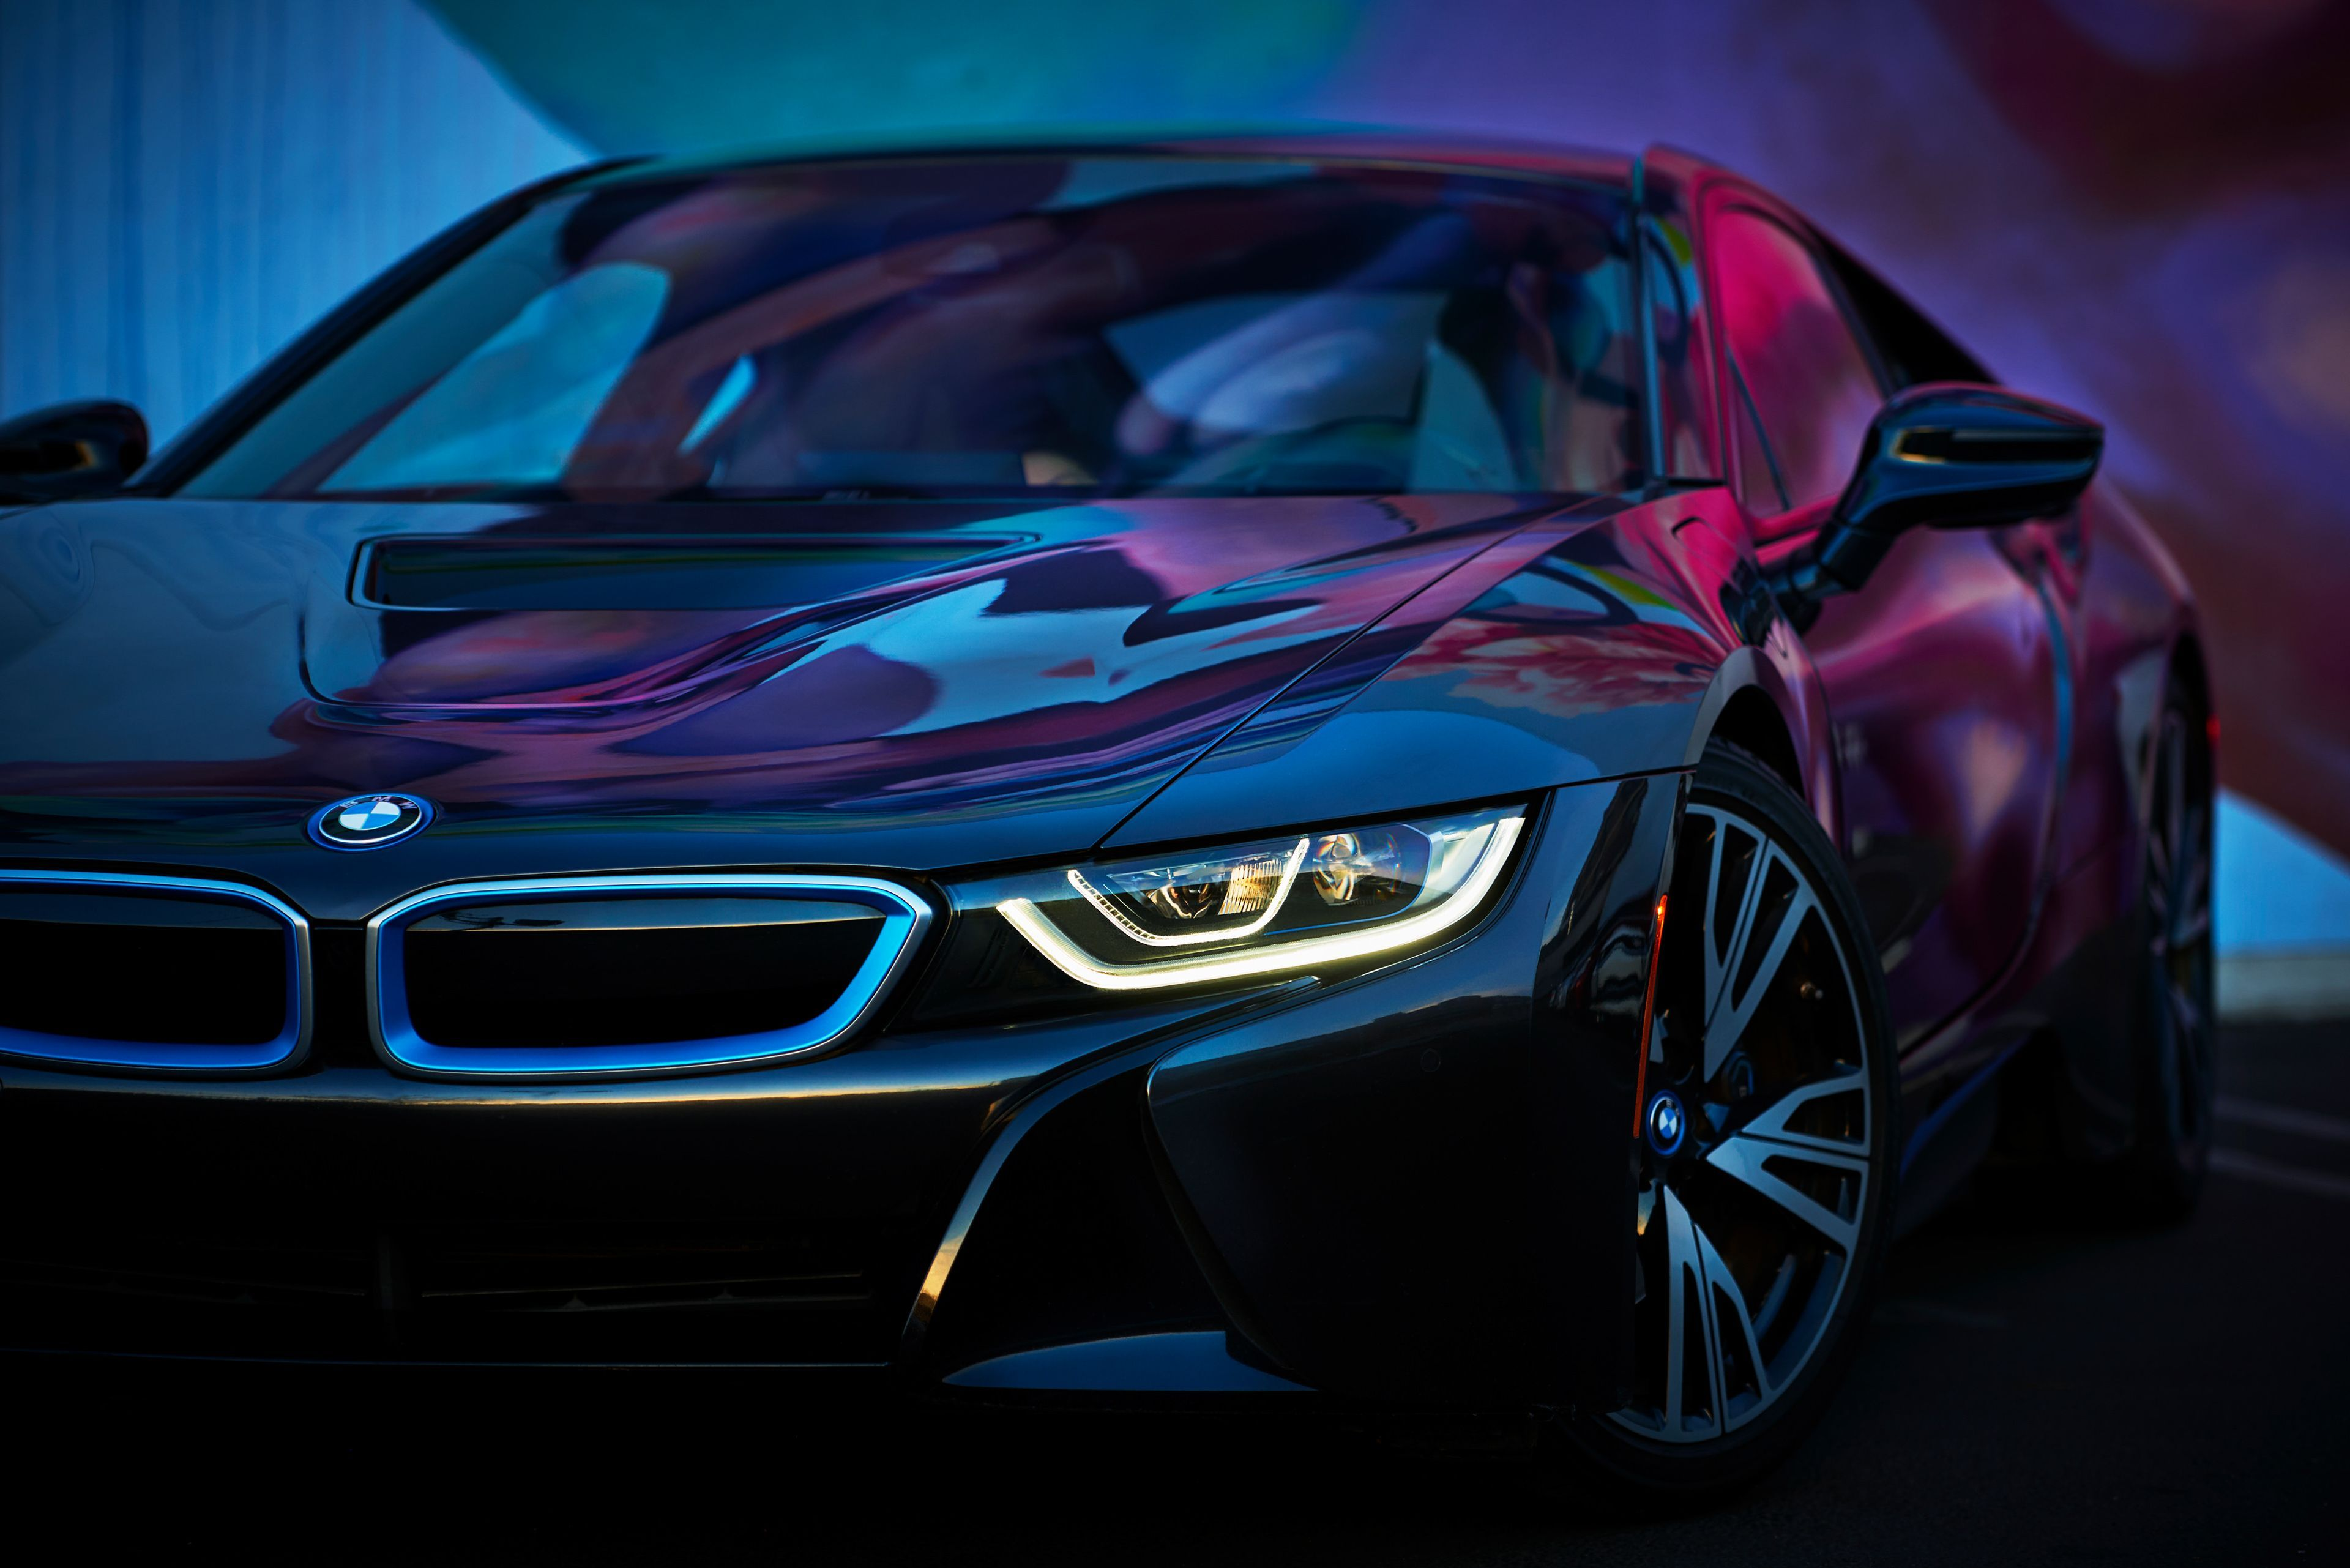 Bmw I8 Hd Wallpapers Top Free Bmw I8 Hd Backgrounds Wallpaperaccess Bmw I8 Bmw Mobil Bmw